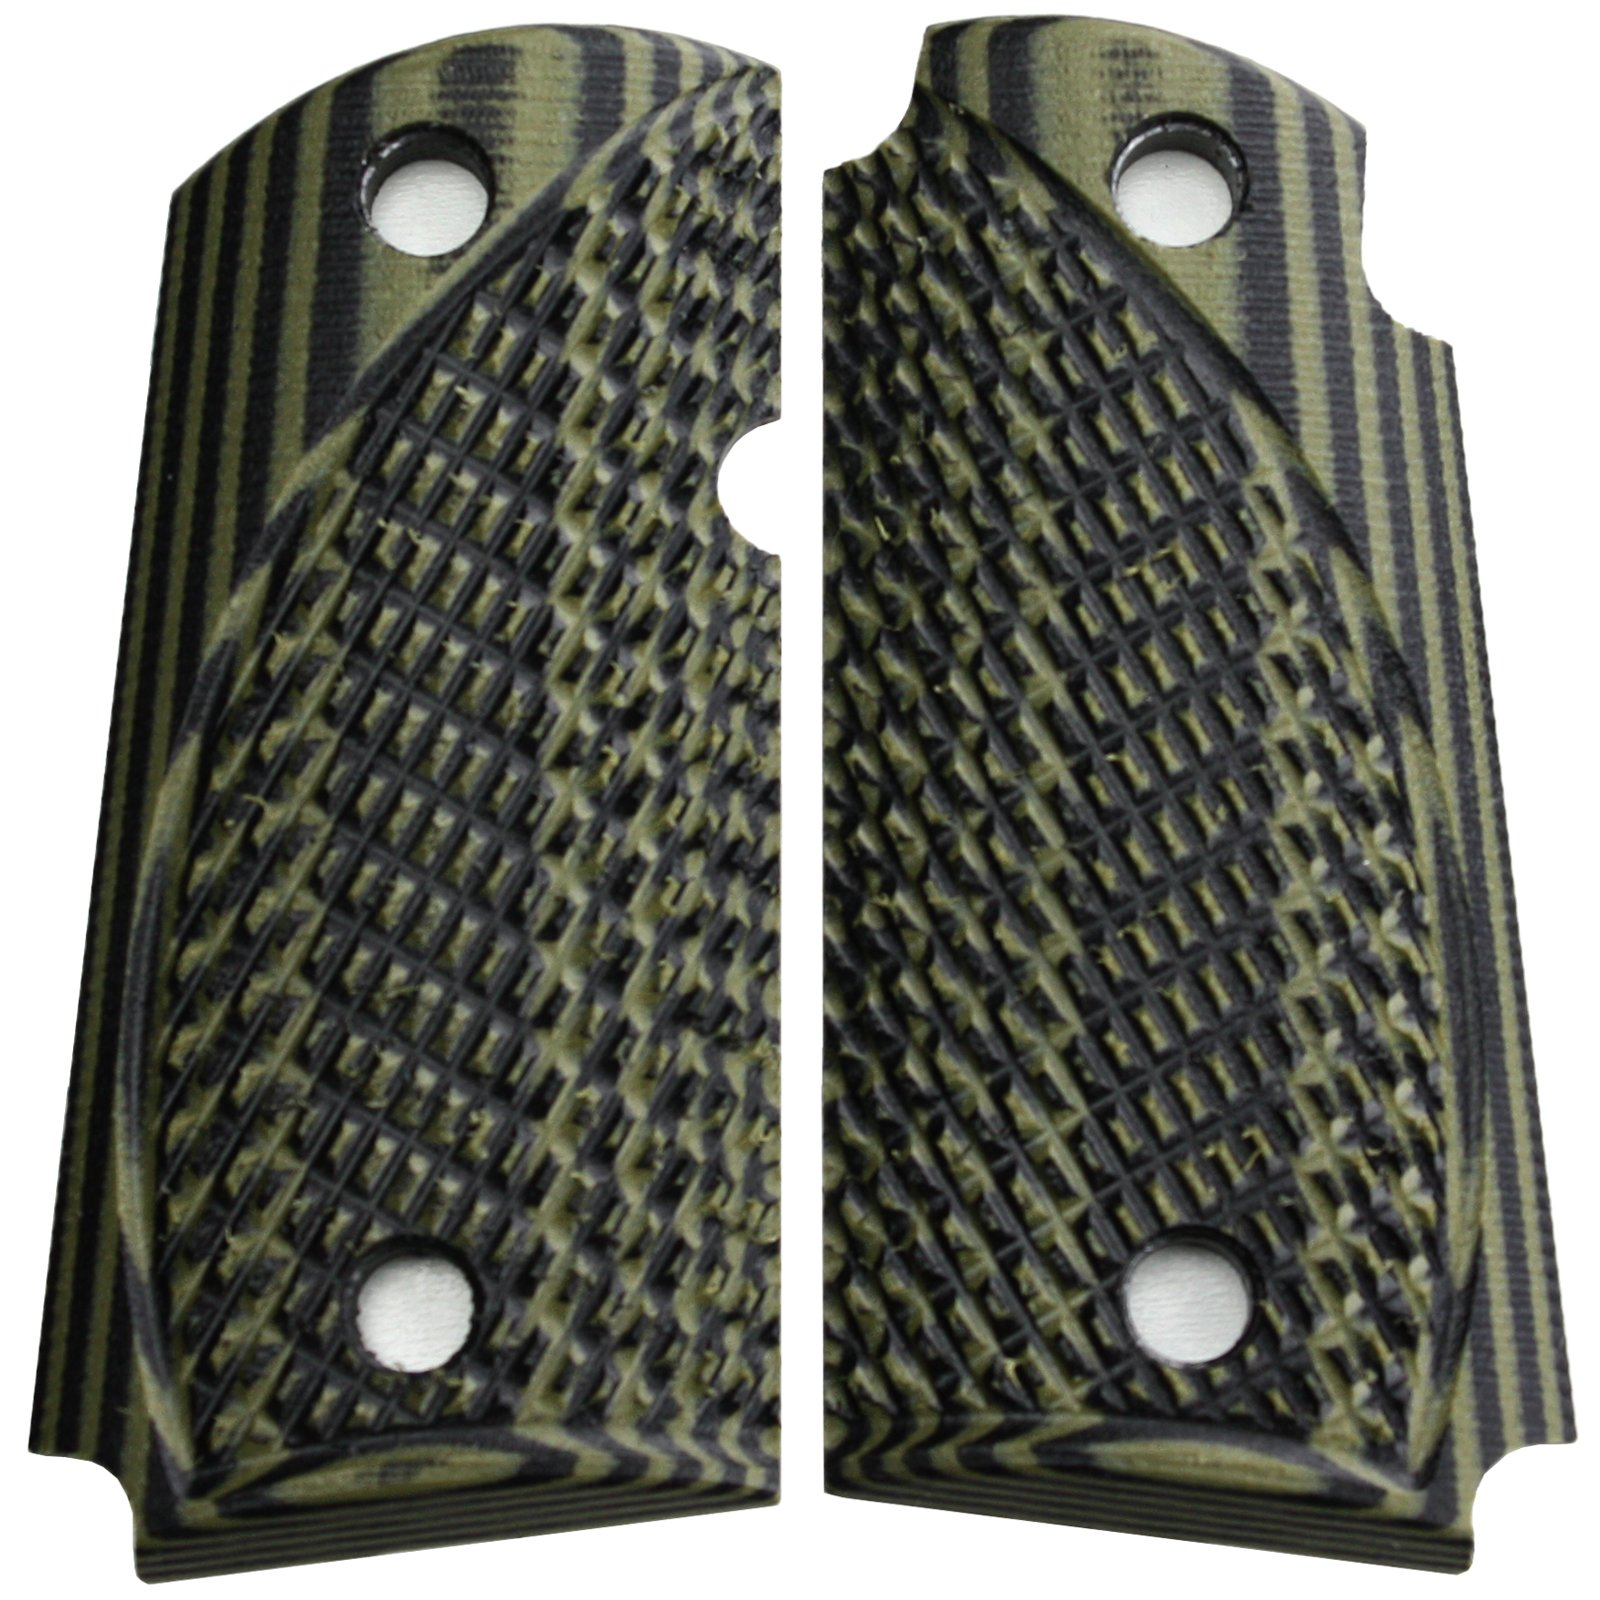 StonerCNC Kimber Micro Carry 9 9mm Spartan G10 Grips with or Without Ambi (OD Green Black, Ambi) by StonerCNC